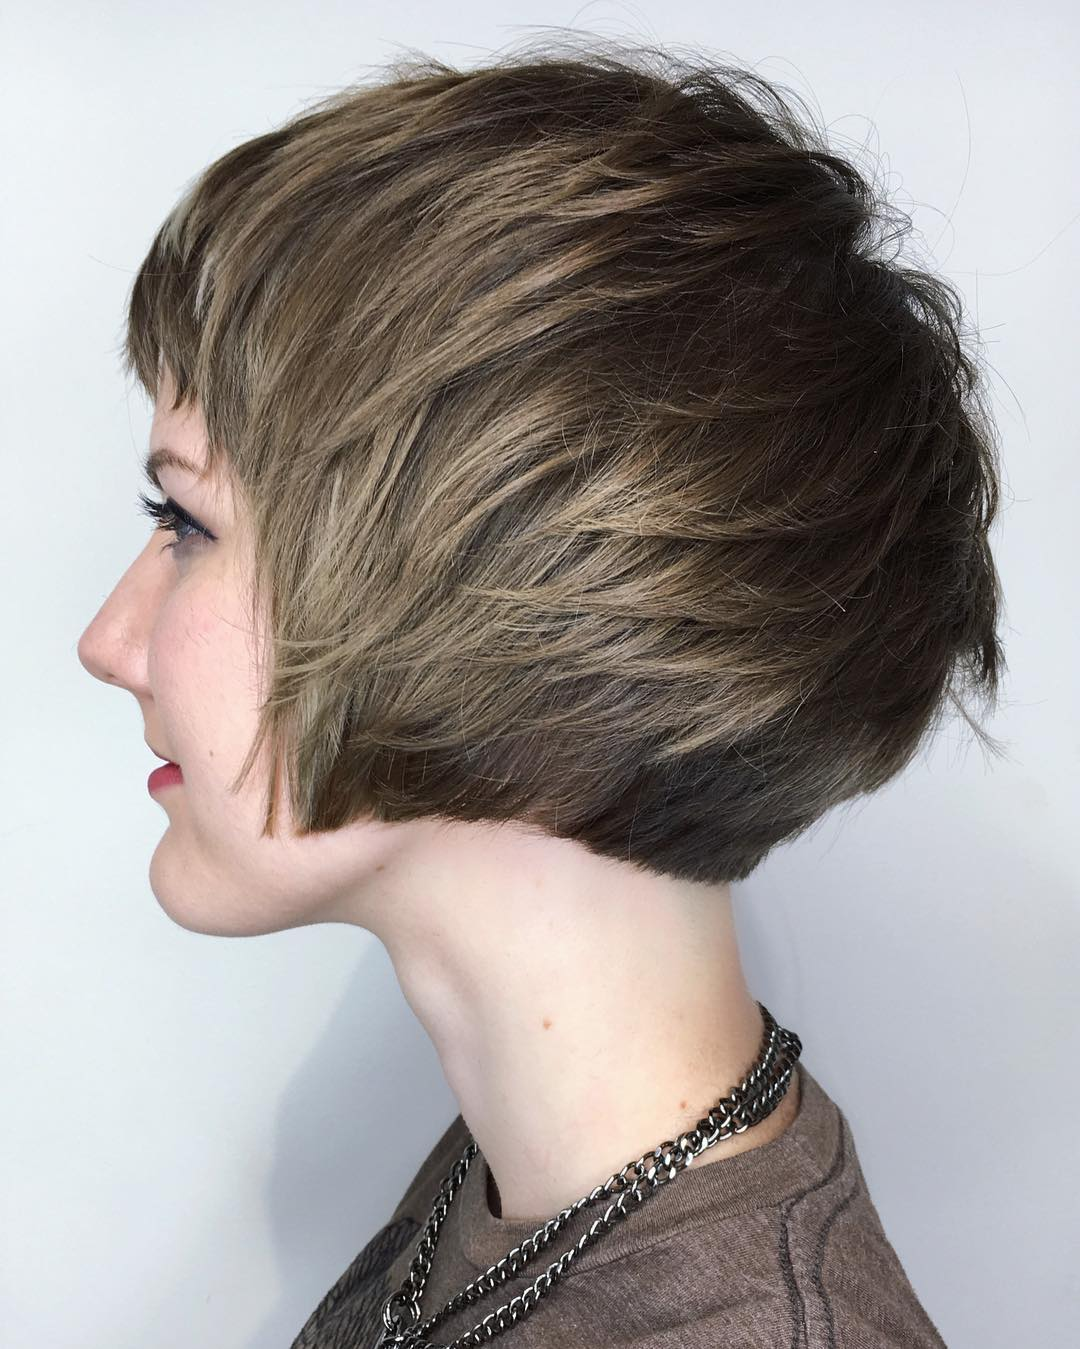 10 Best Short Straight Hairstyle Trends 2020